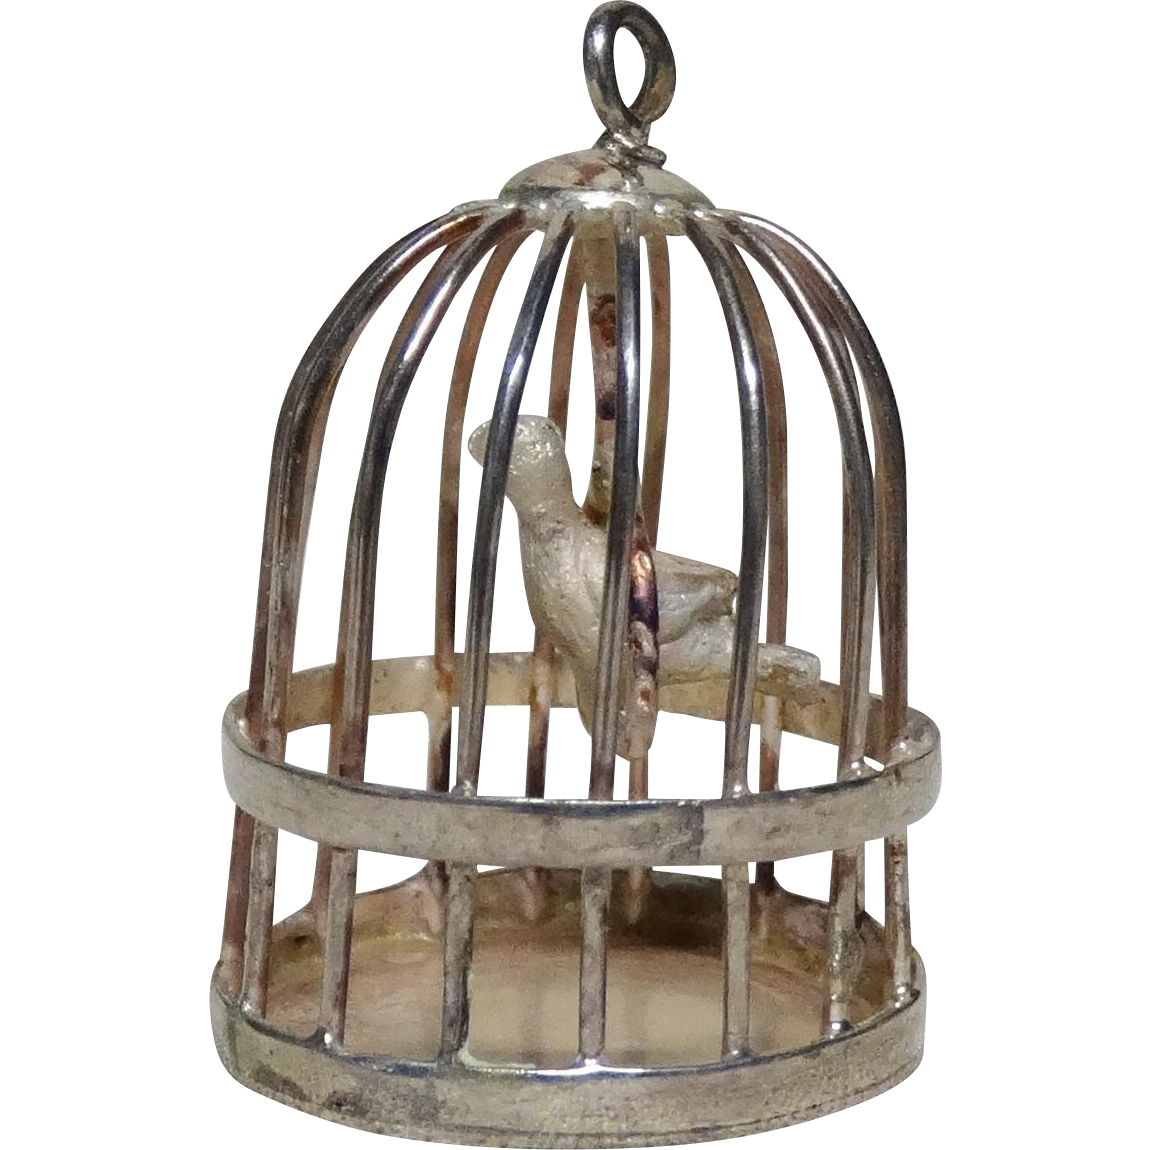 Bird In A Cage - Miniature and Adorable